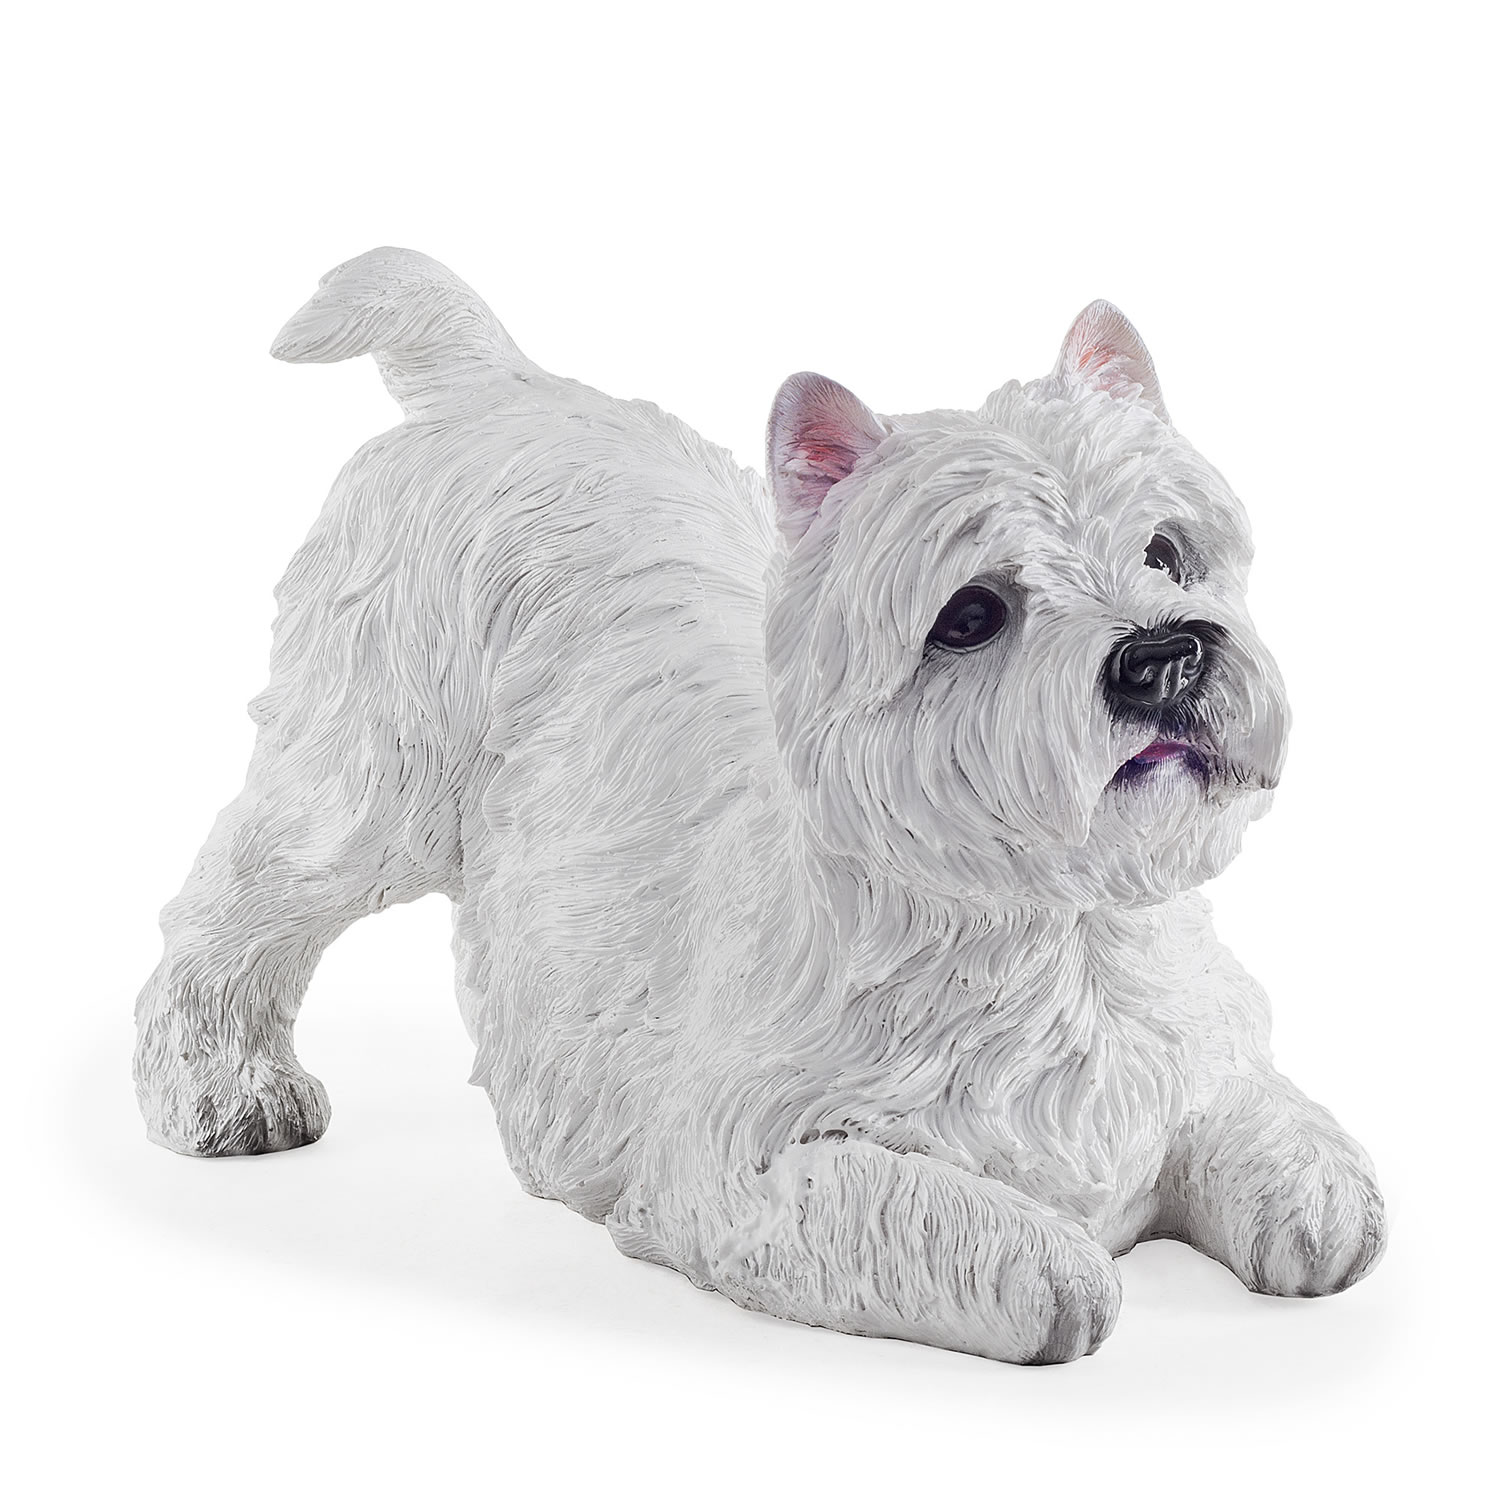 Twiggy The Realistic Playful West Highland Terrier Dog